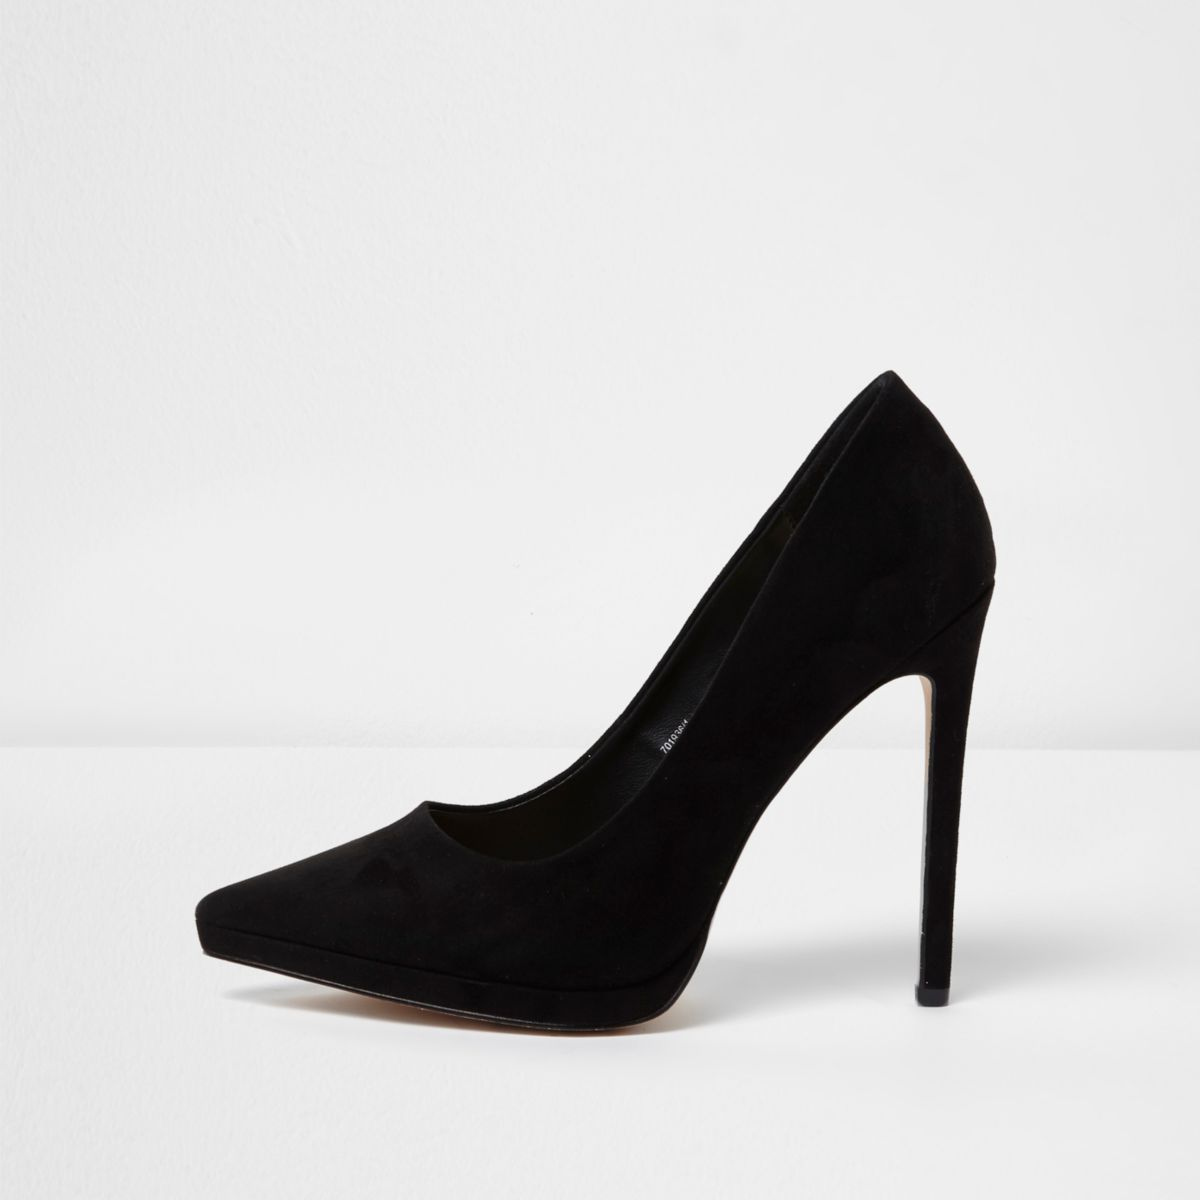 Black platform court shoes - Workwear - Sale - women